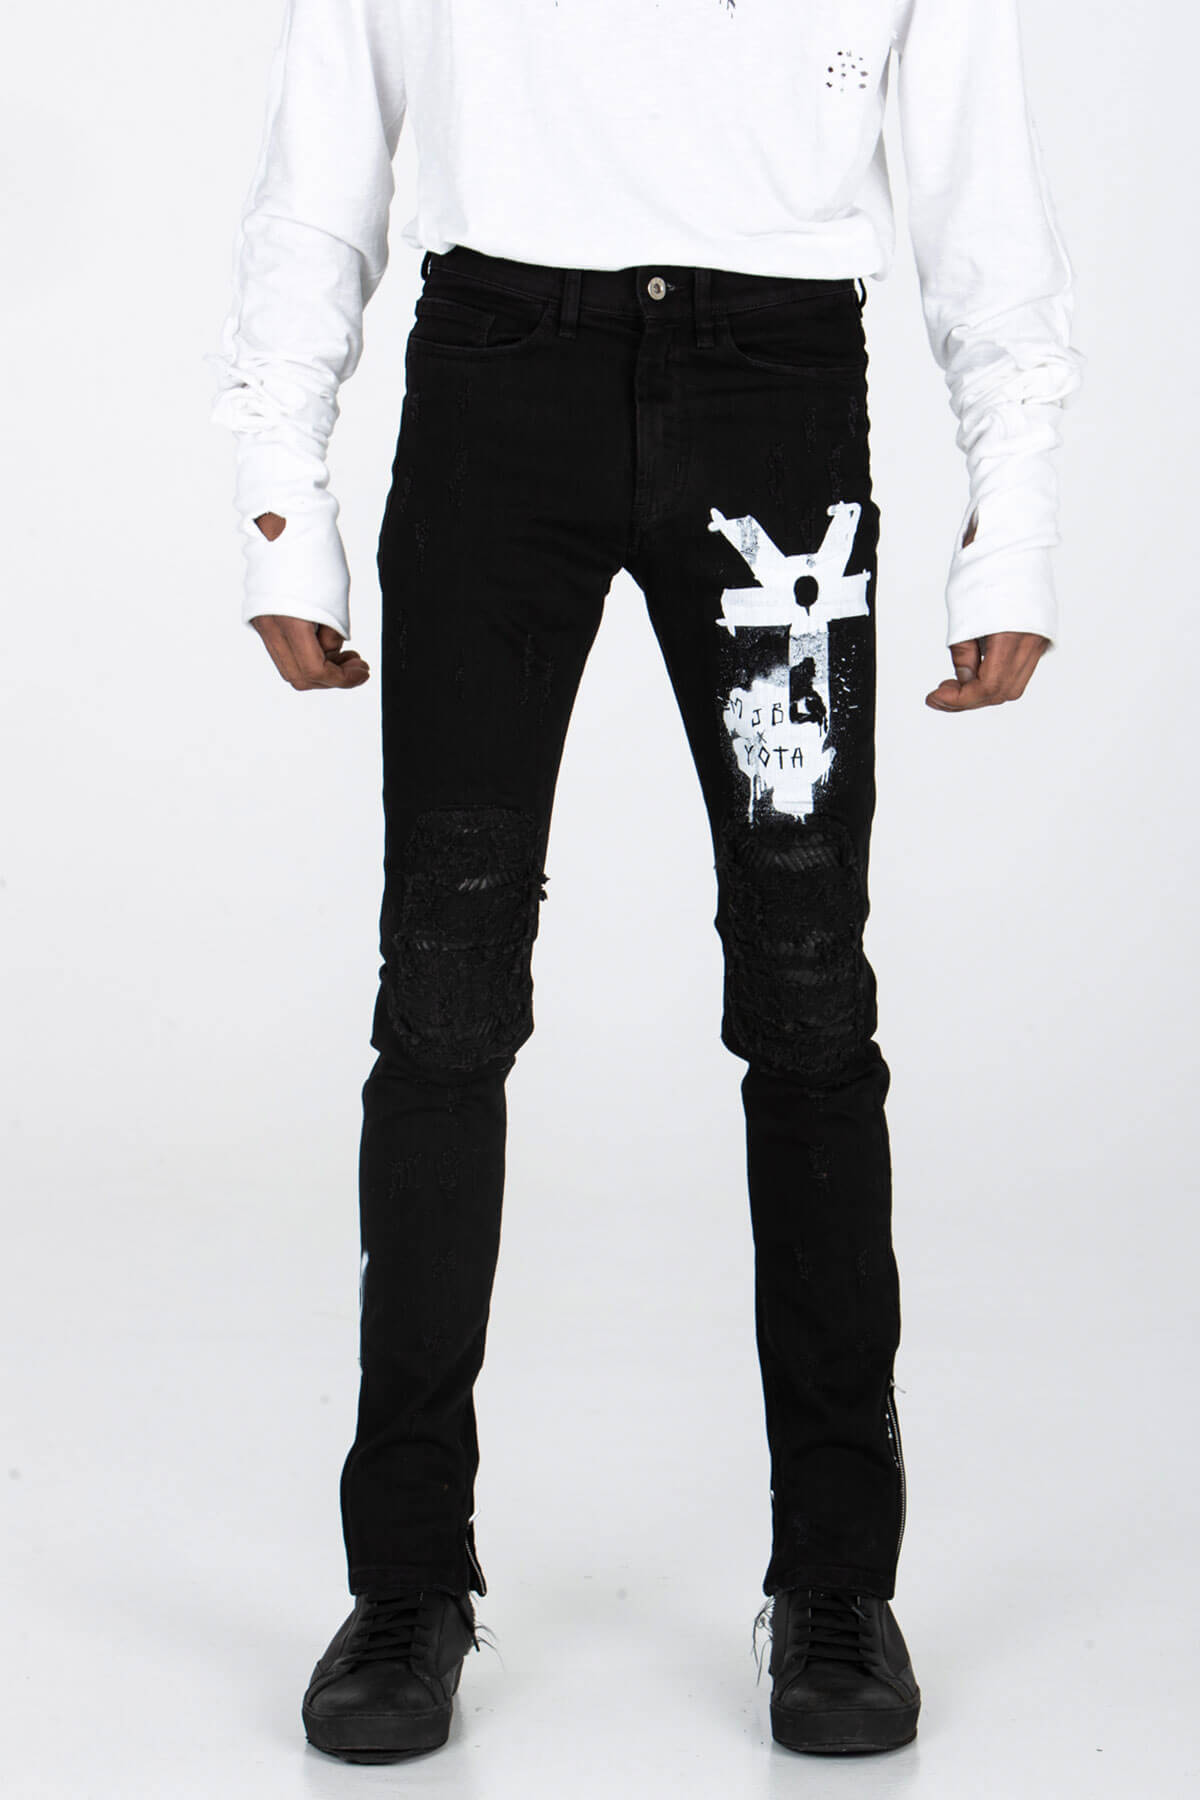 CRIXUS JEANS – YOTA (LIMITED EDITION)